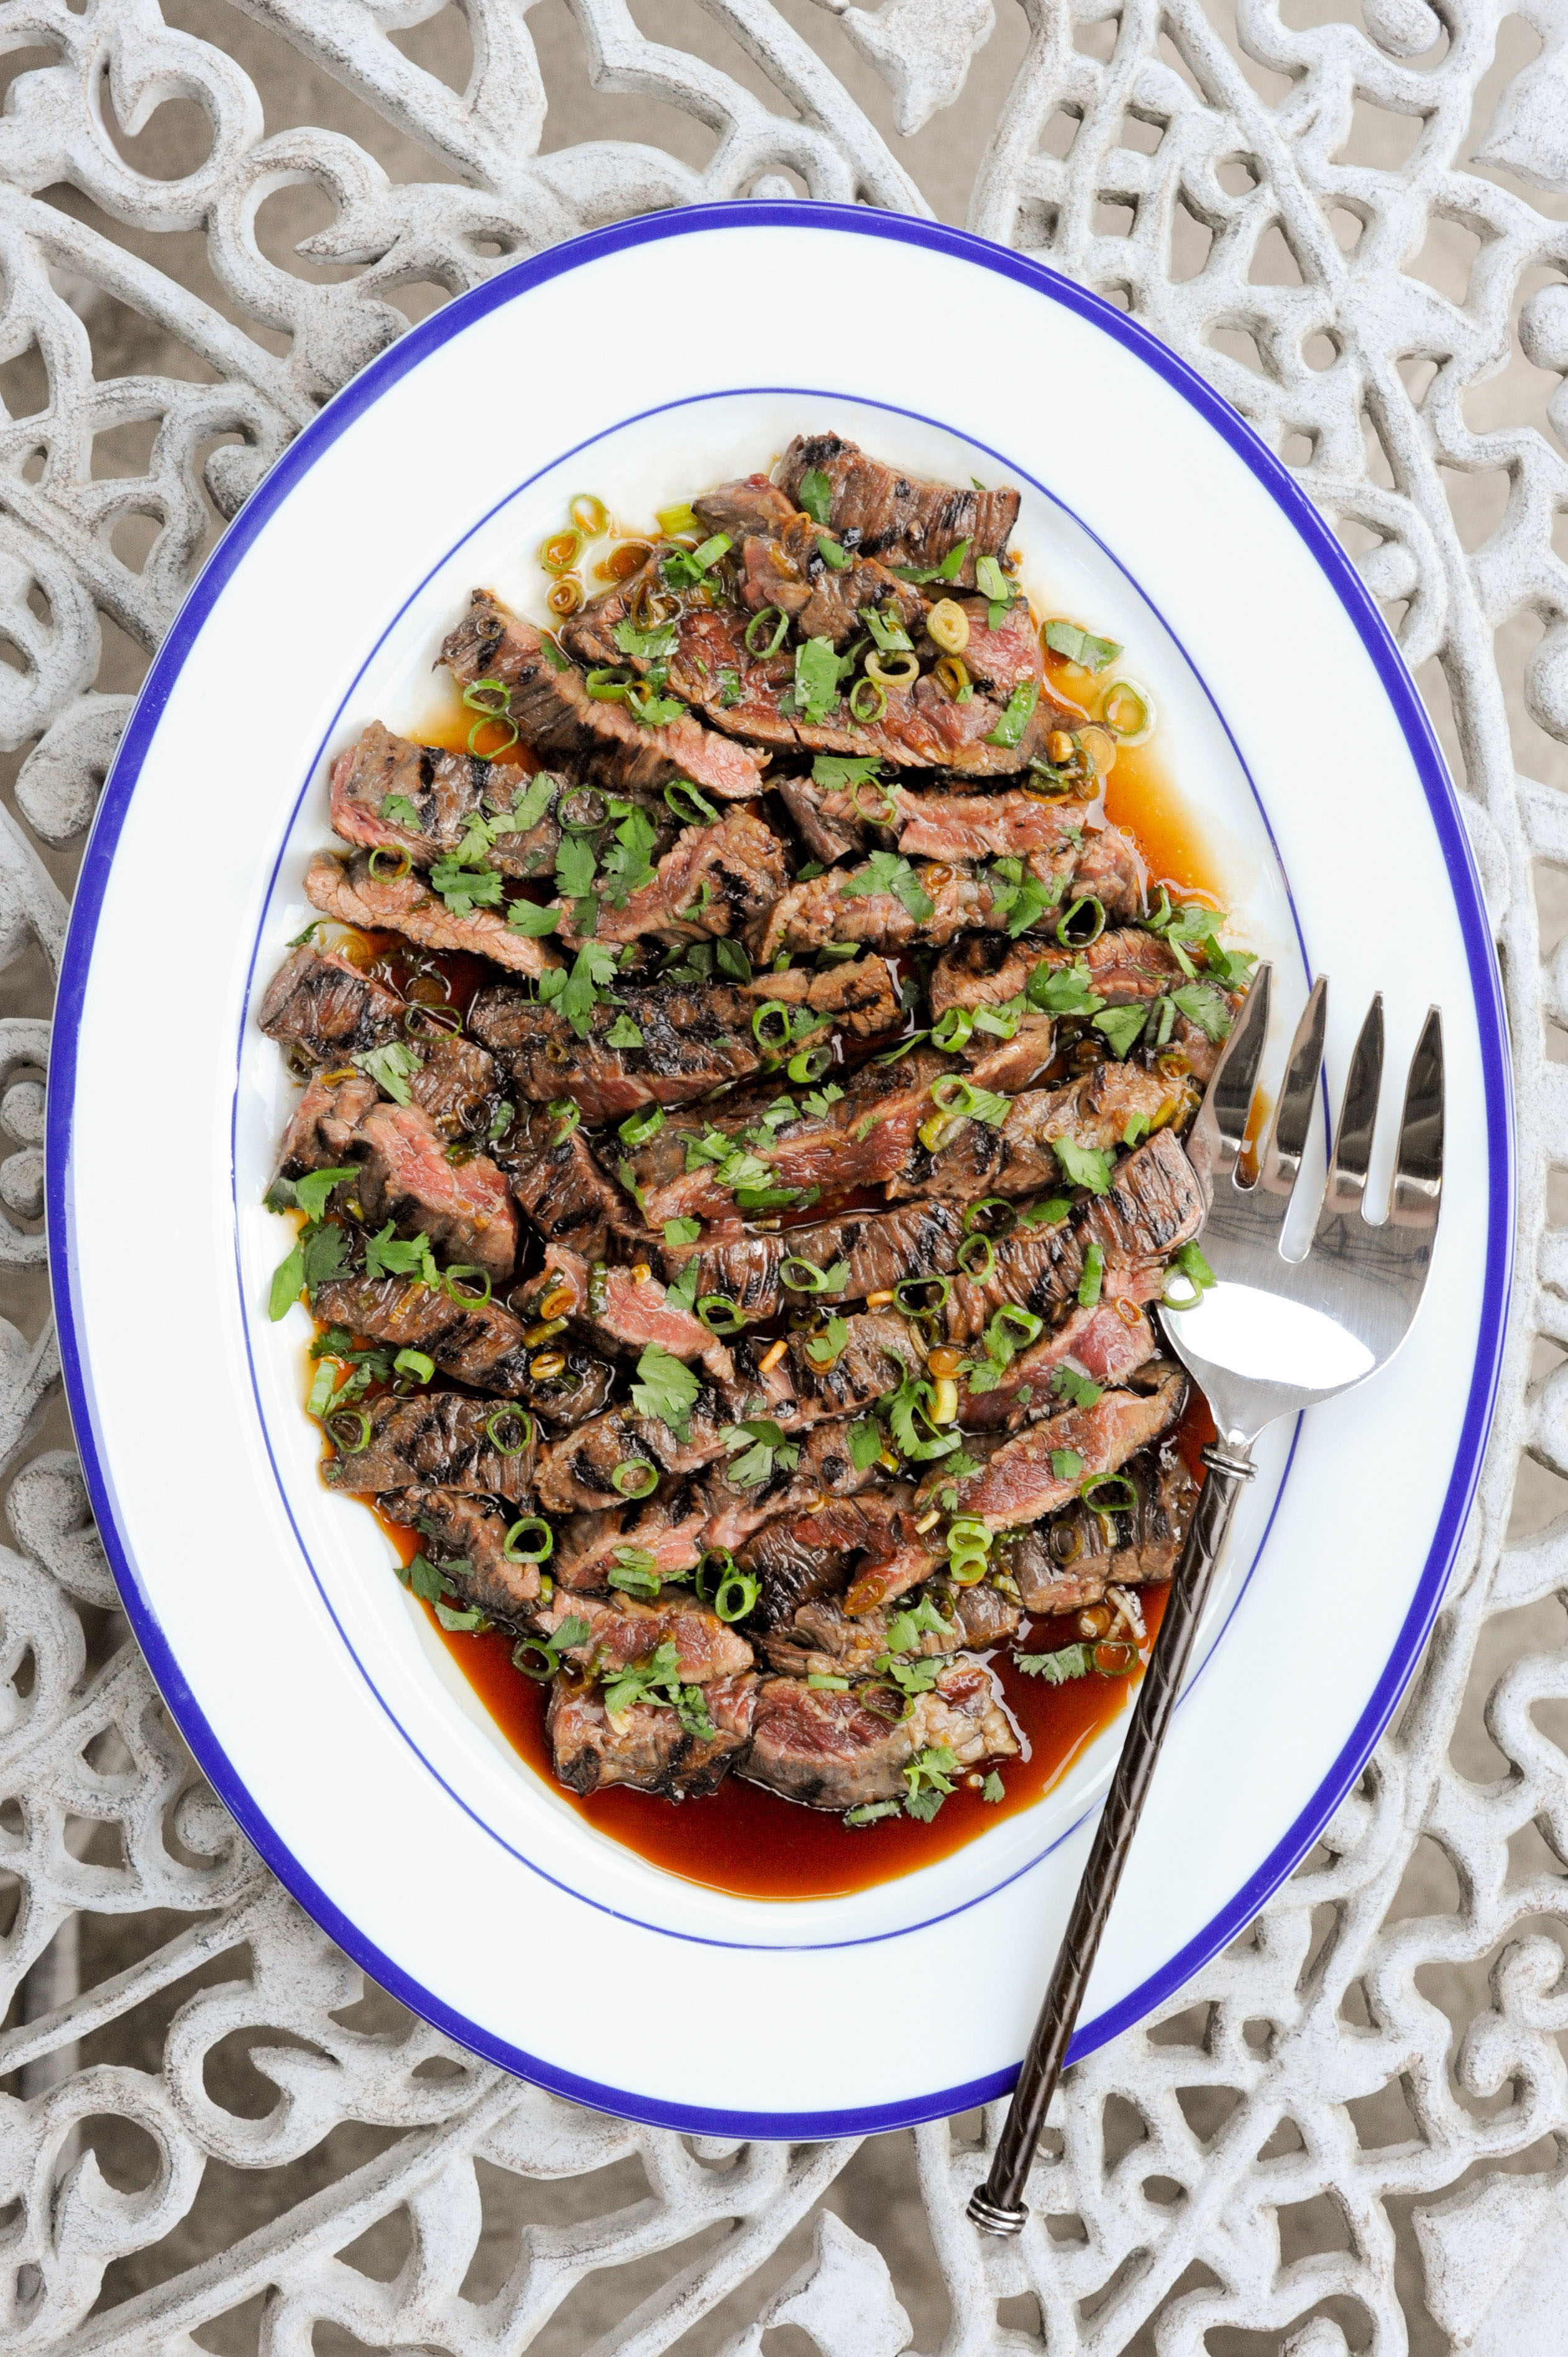 Grilled Skirt Steak With Soy-Garlic Marinade | amodestfeast.com | @amodestfeast